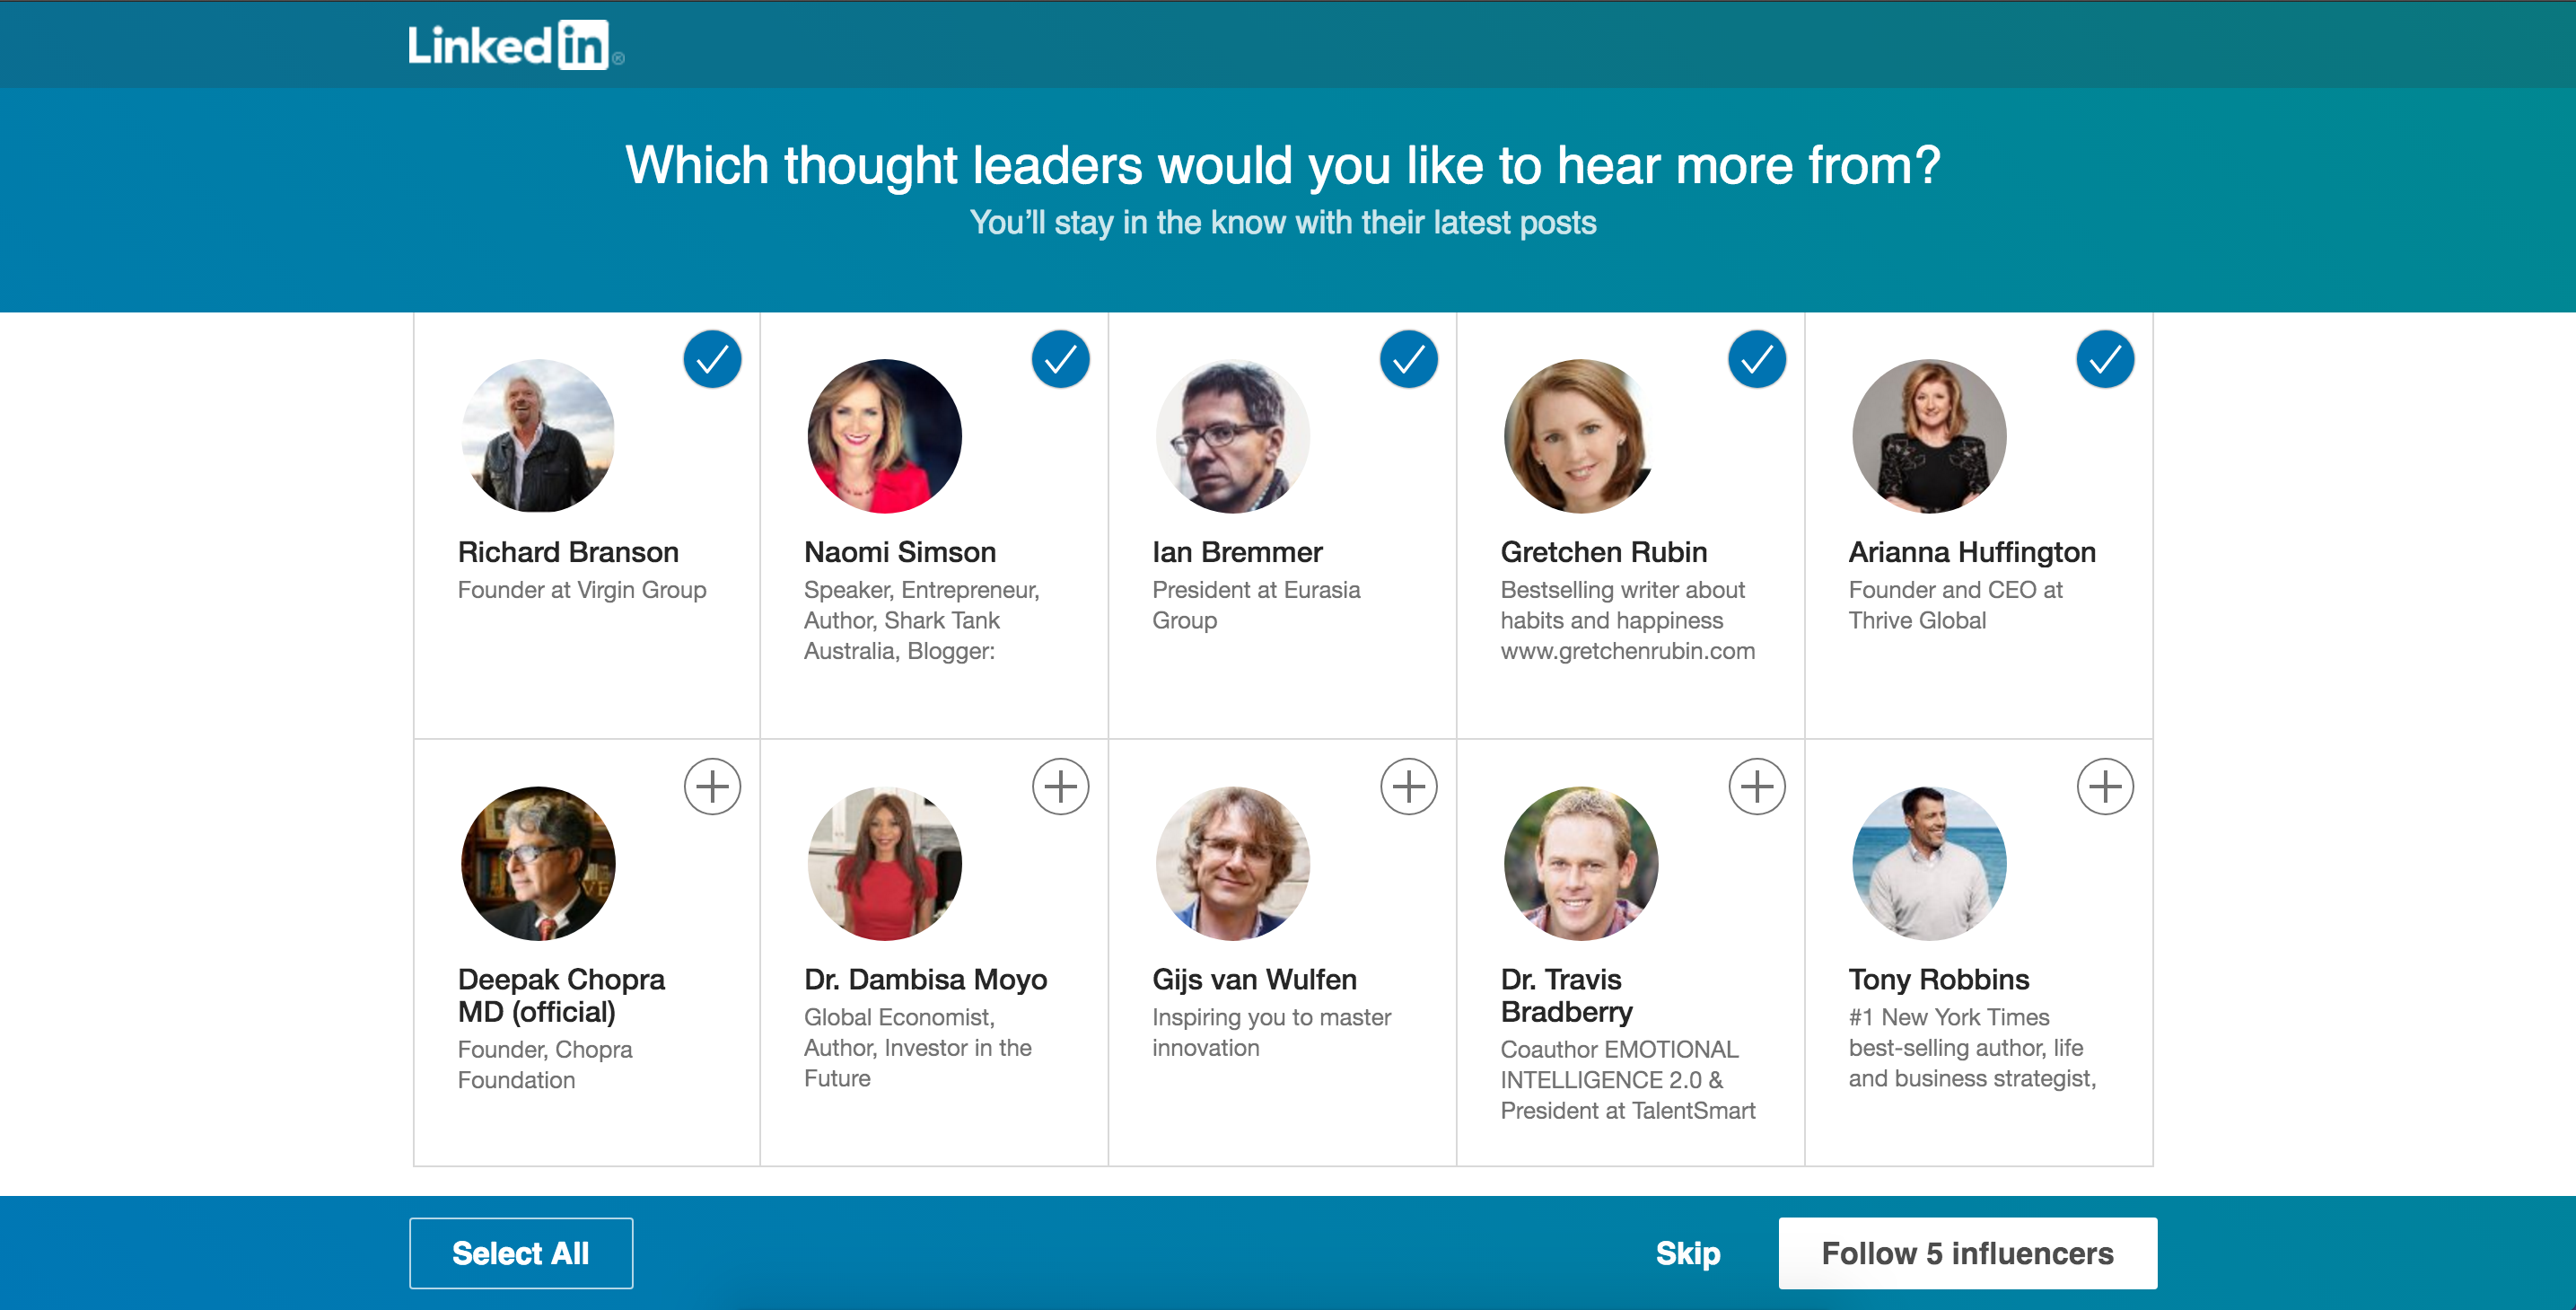 LinkedIn personalization thought leaders onboarding